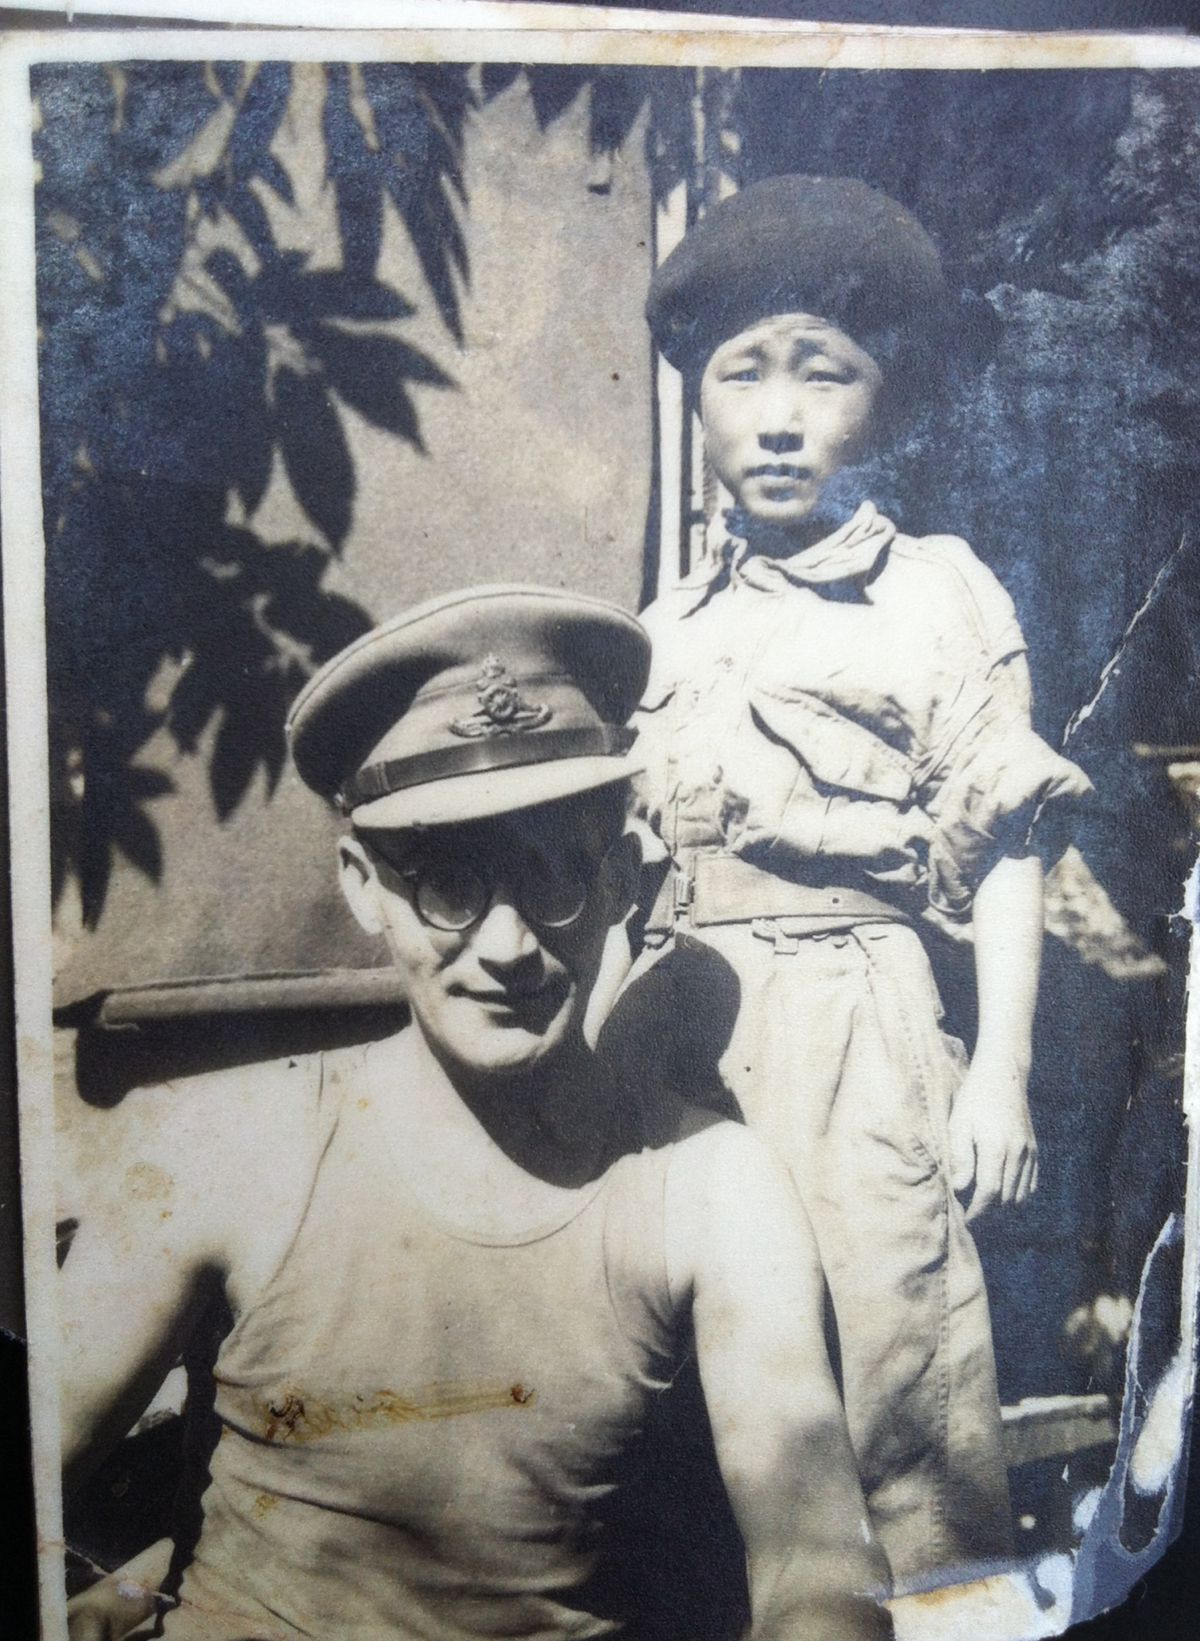 Help reunite Po and this British Soldier: 55 years in the making!